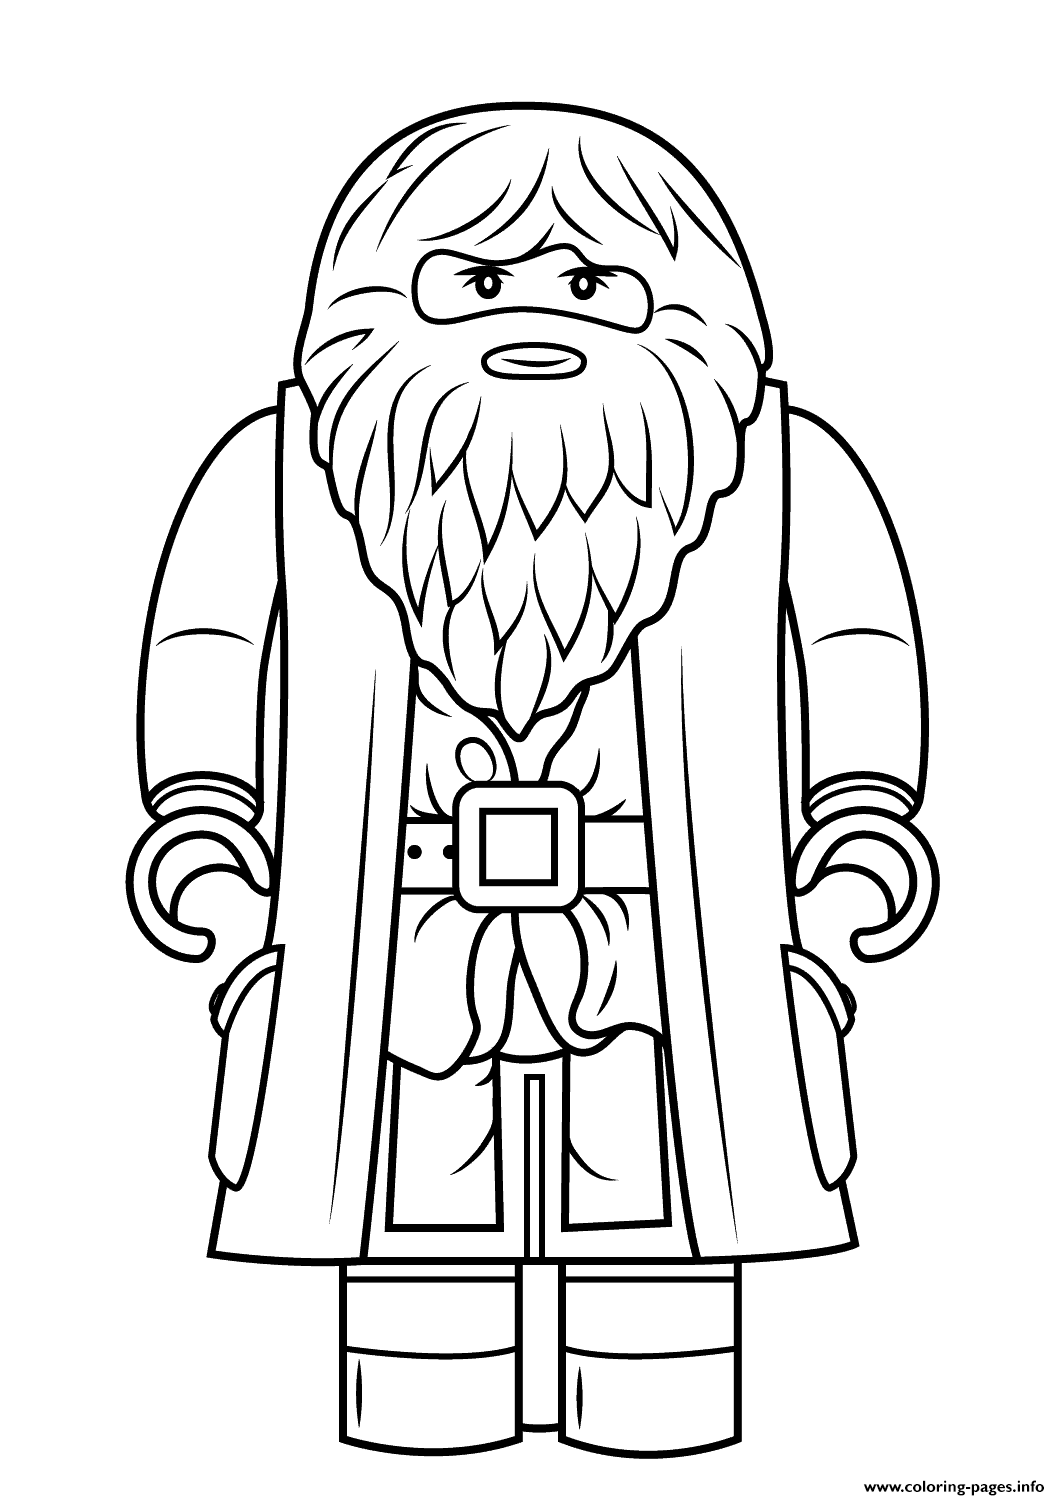 Harry potter coloring pages printable - Lego Rubeus Hagrid Minifigure Harry Potter Coloring Pages